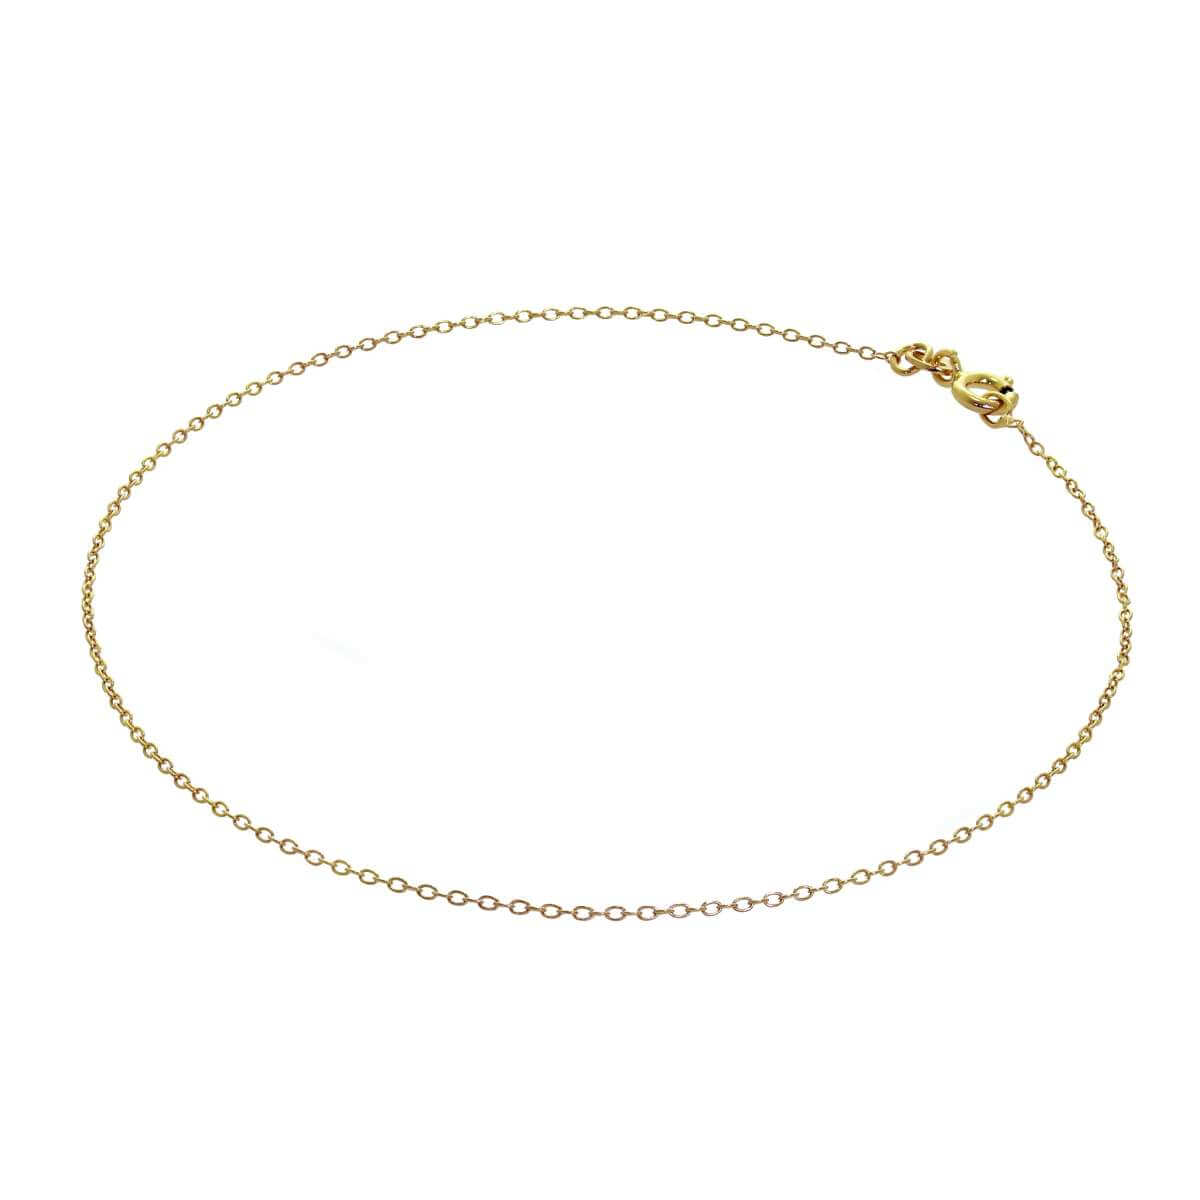 Fine Gold Plated Sterling Silver Belcher Anklet - 10 Inches